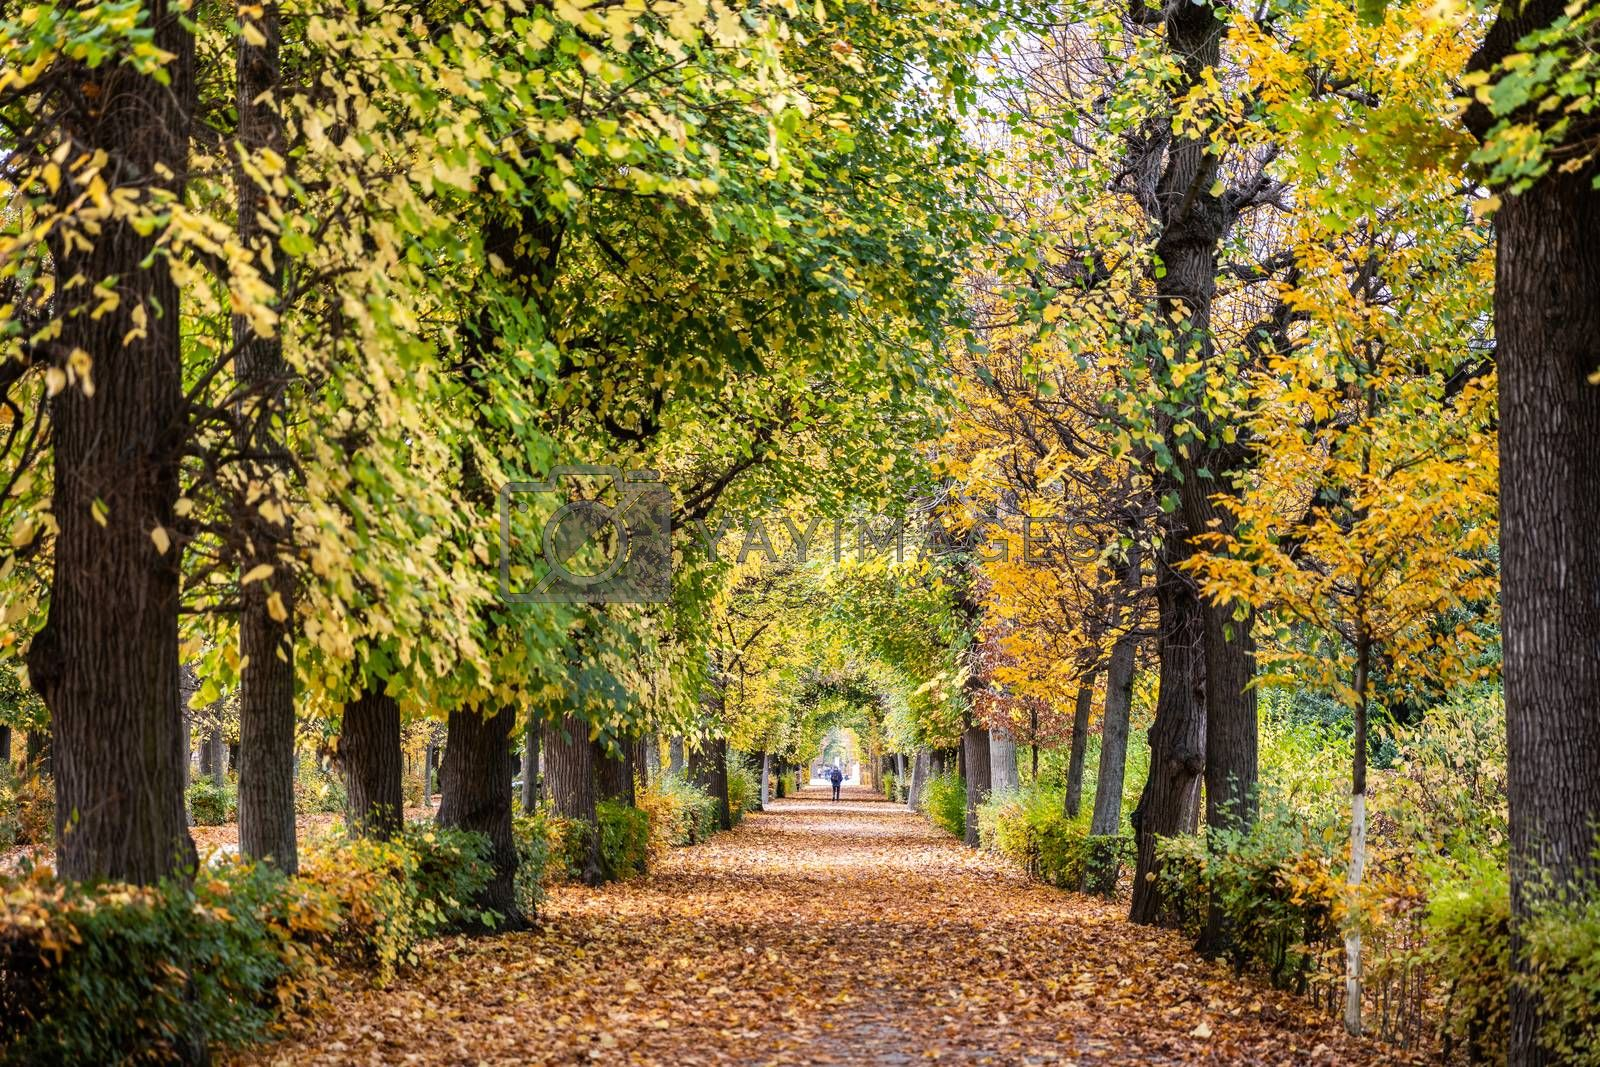 Walkway covered by falling leaves from maple trees inside public park in Austria, leaf changing color from green to yellow in autumn.